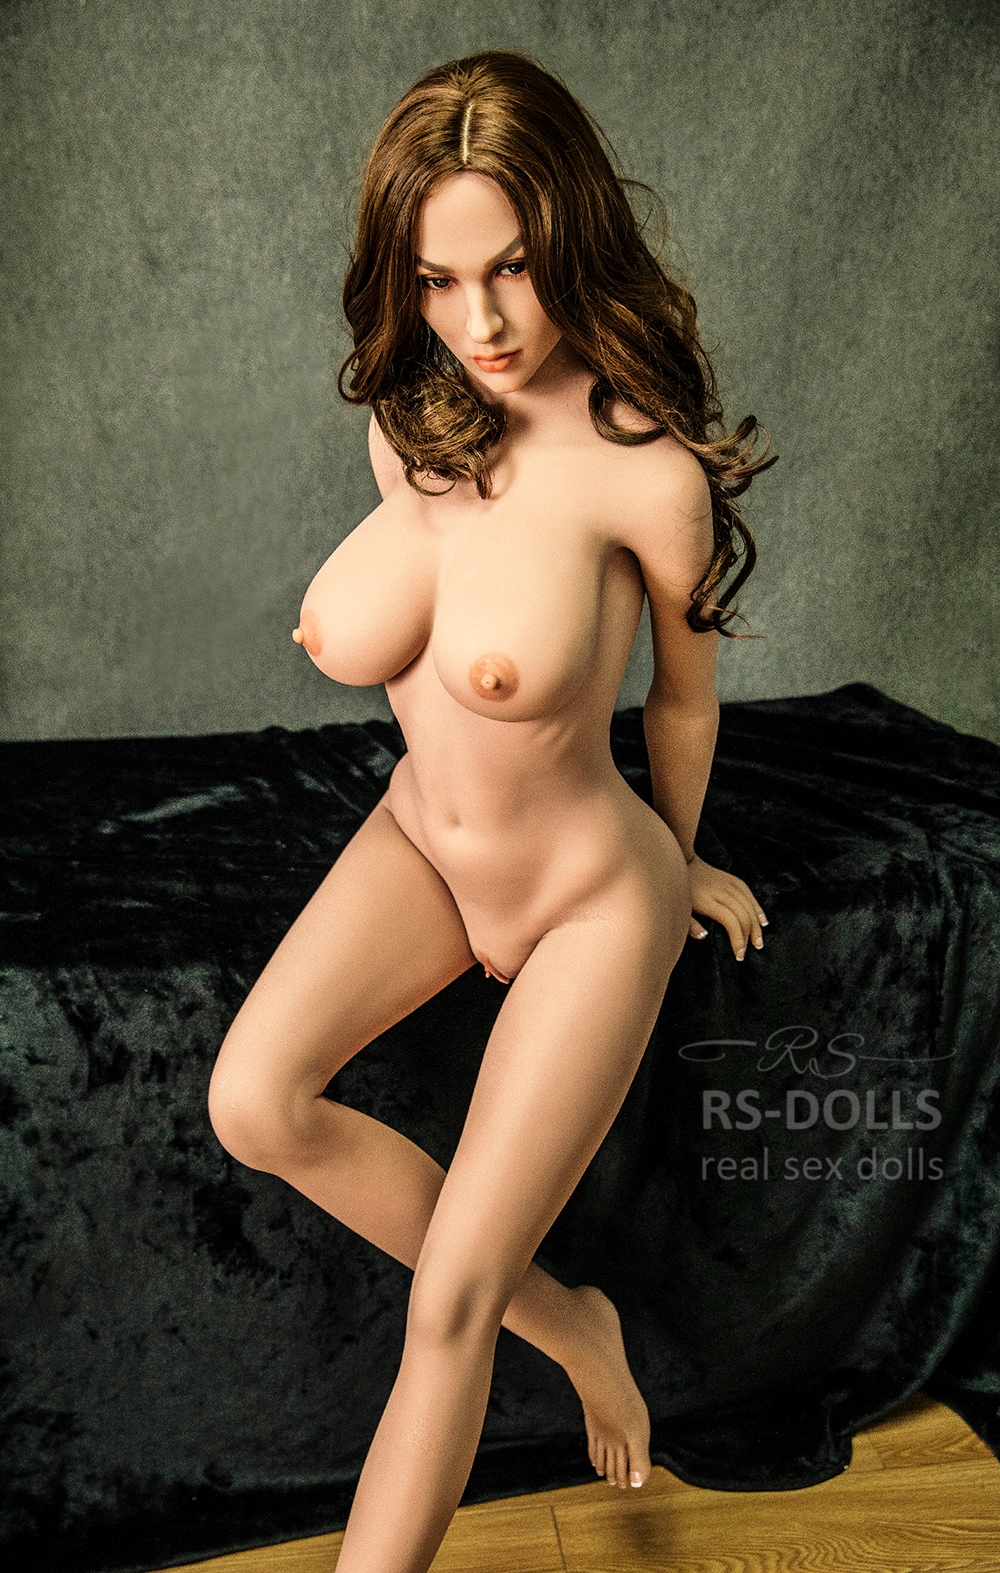 Ryda RSD PrimeLine real sex doll RS DOLLS Sexpuppen 8